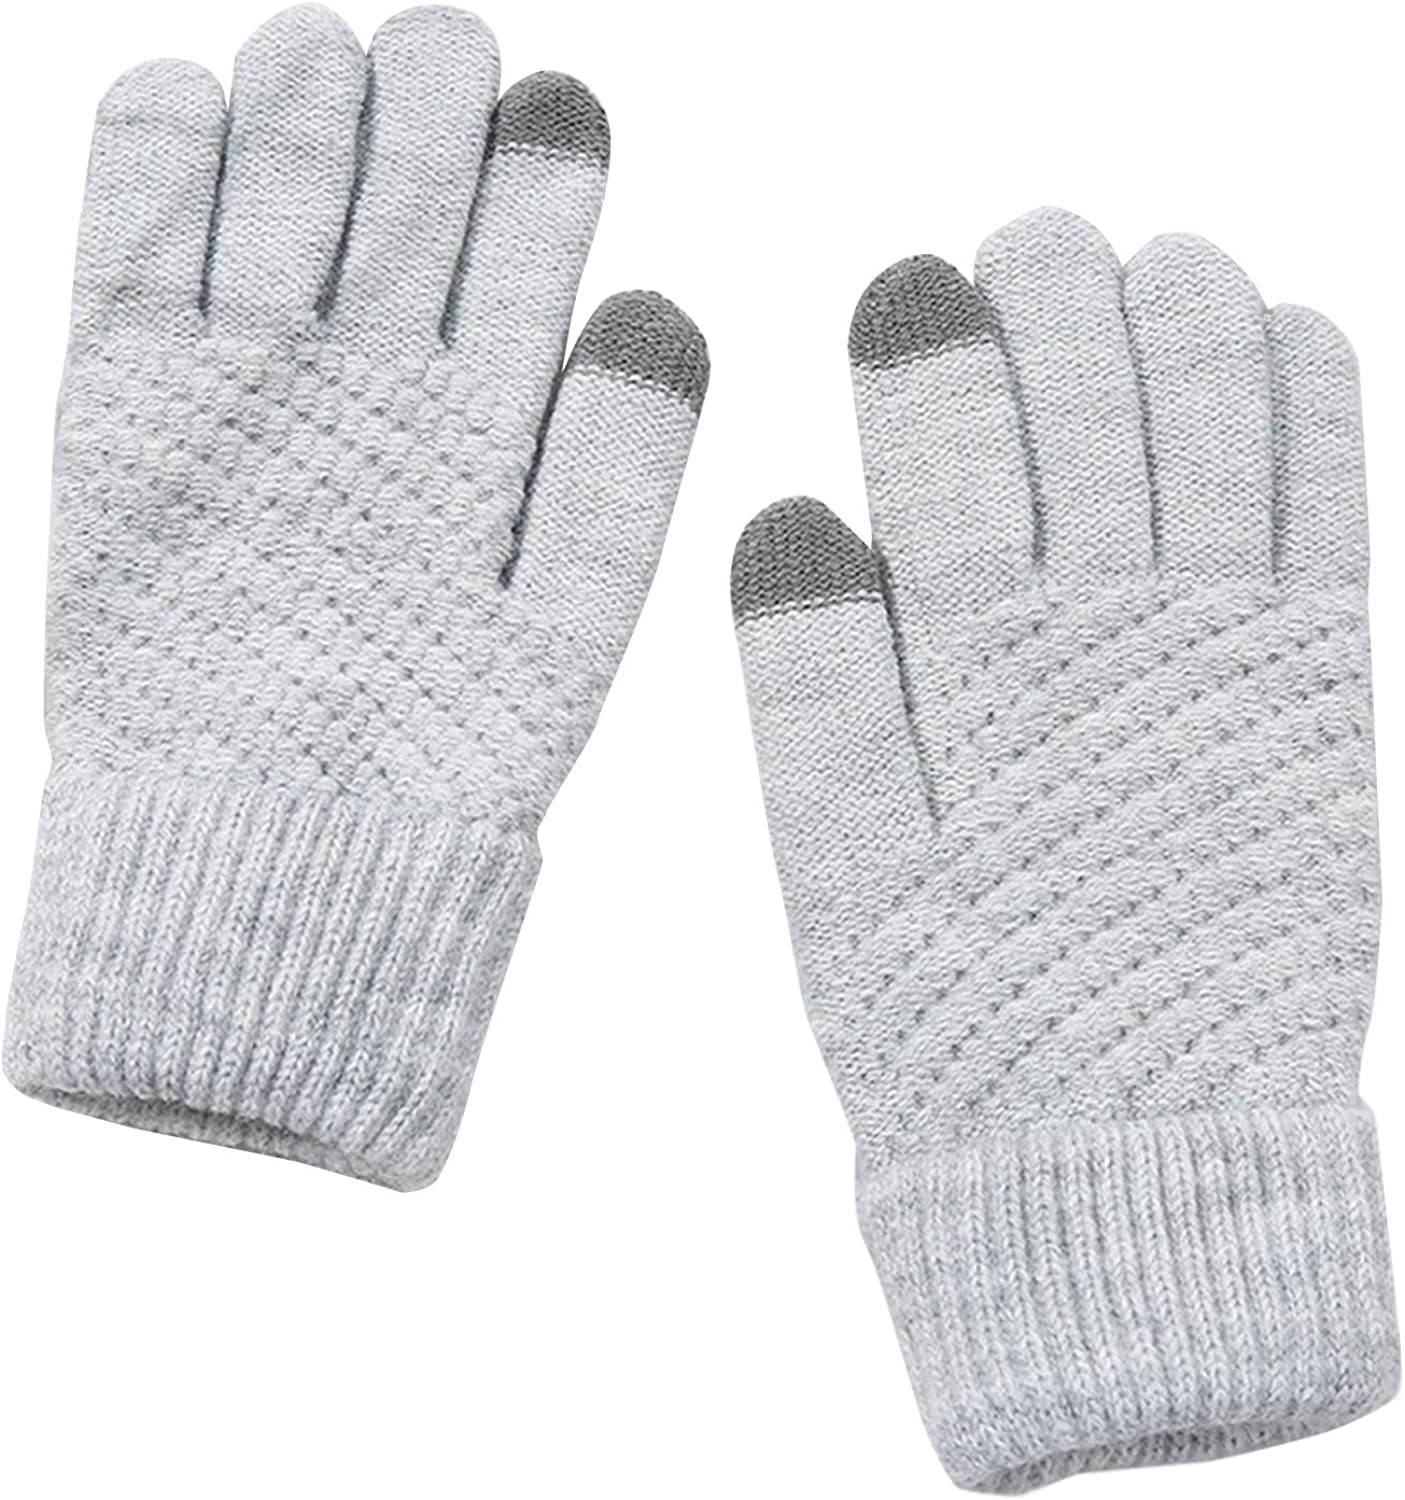 Winter knit gloves for Women and Men Touch screen Elastic cuff Thermal soft wool lining